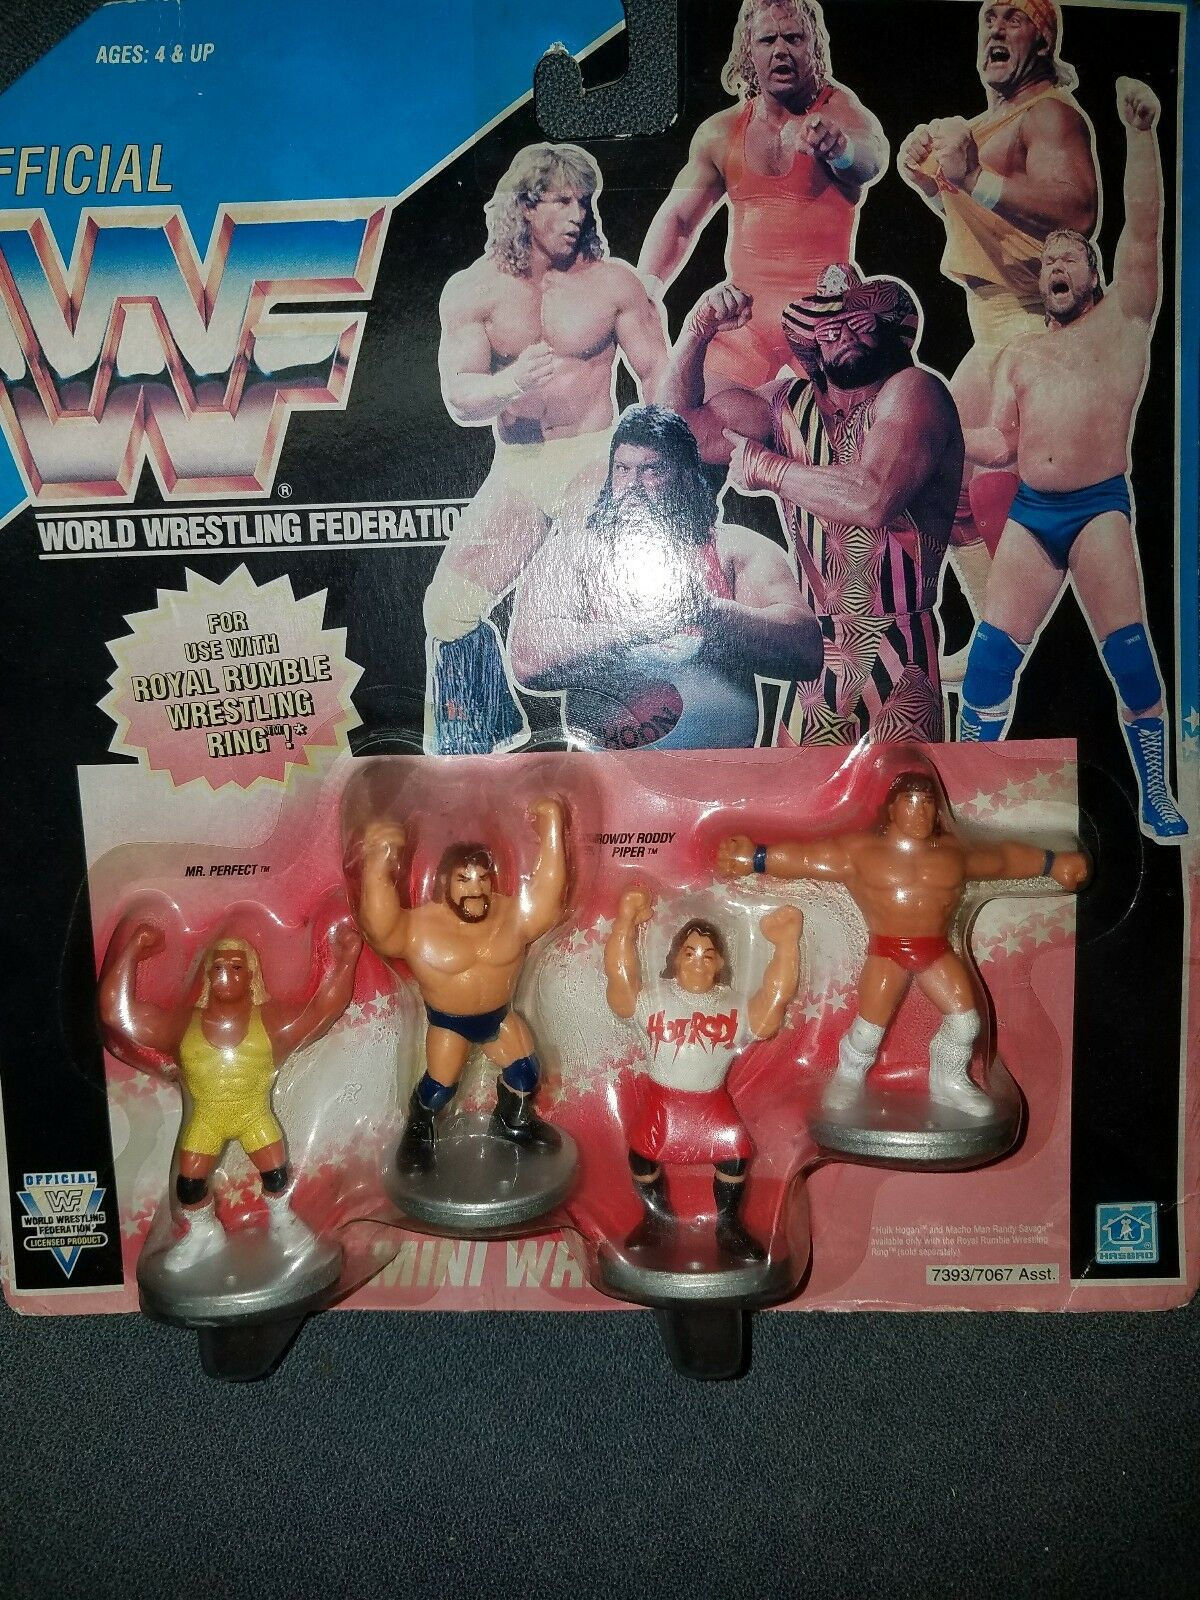 Hasbro WWF WWF ROYAL RUMBLE MINI WRESTLERS cifras 1991  Piper Dugan Perfect nuovo  alla moda